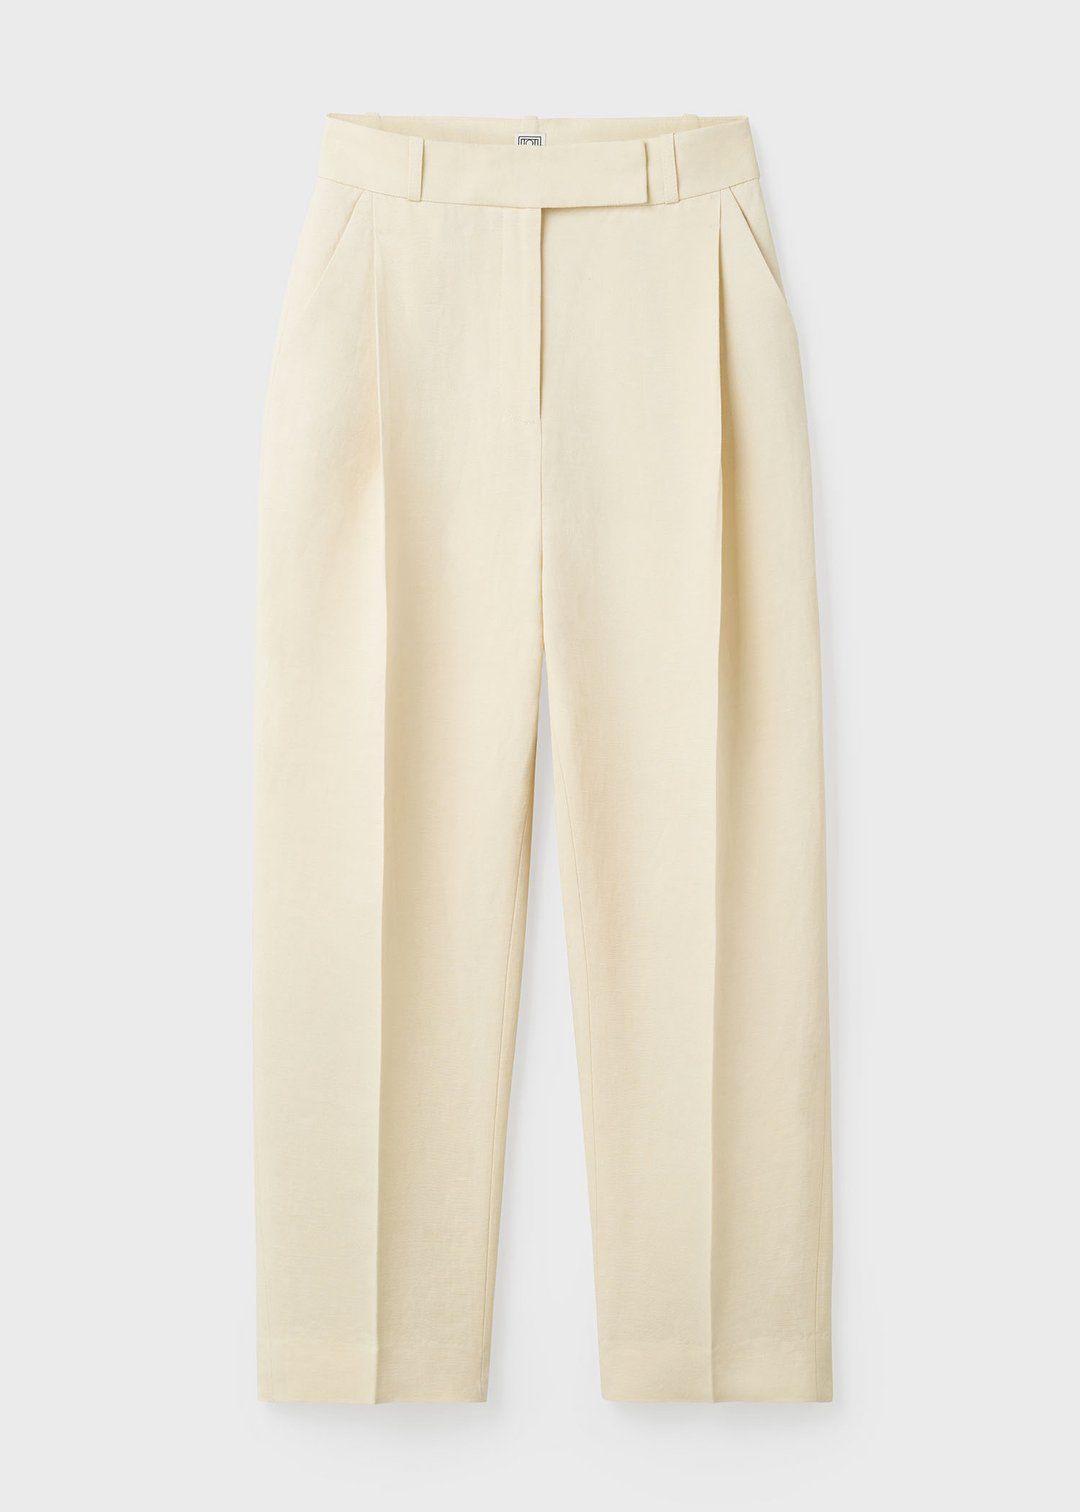 Toteme City Sport Trousers